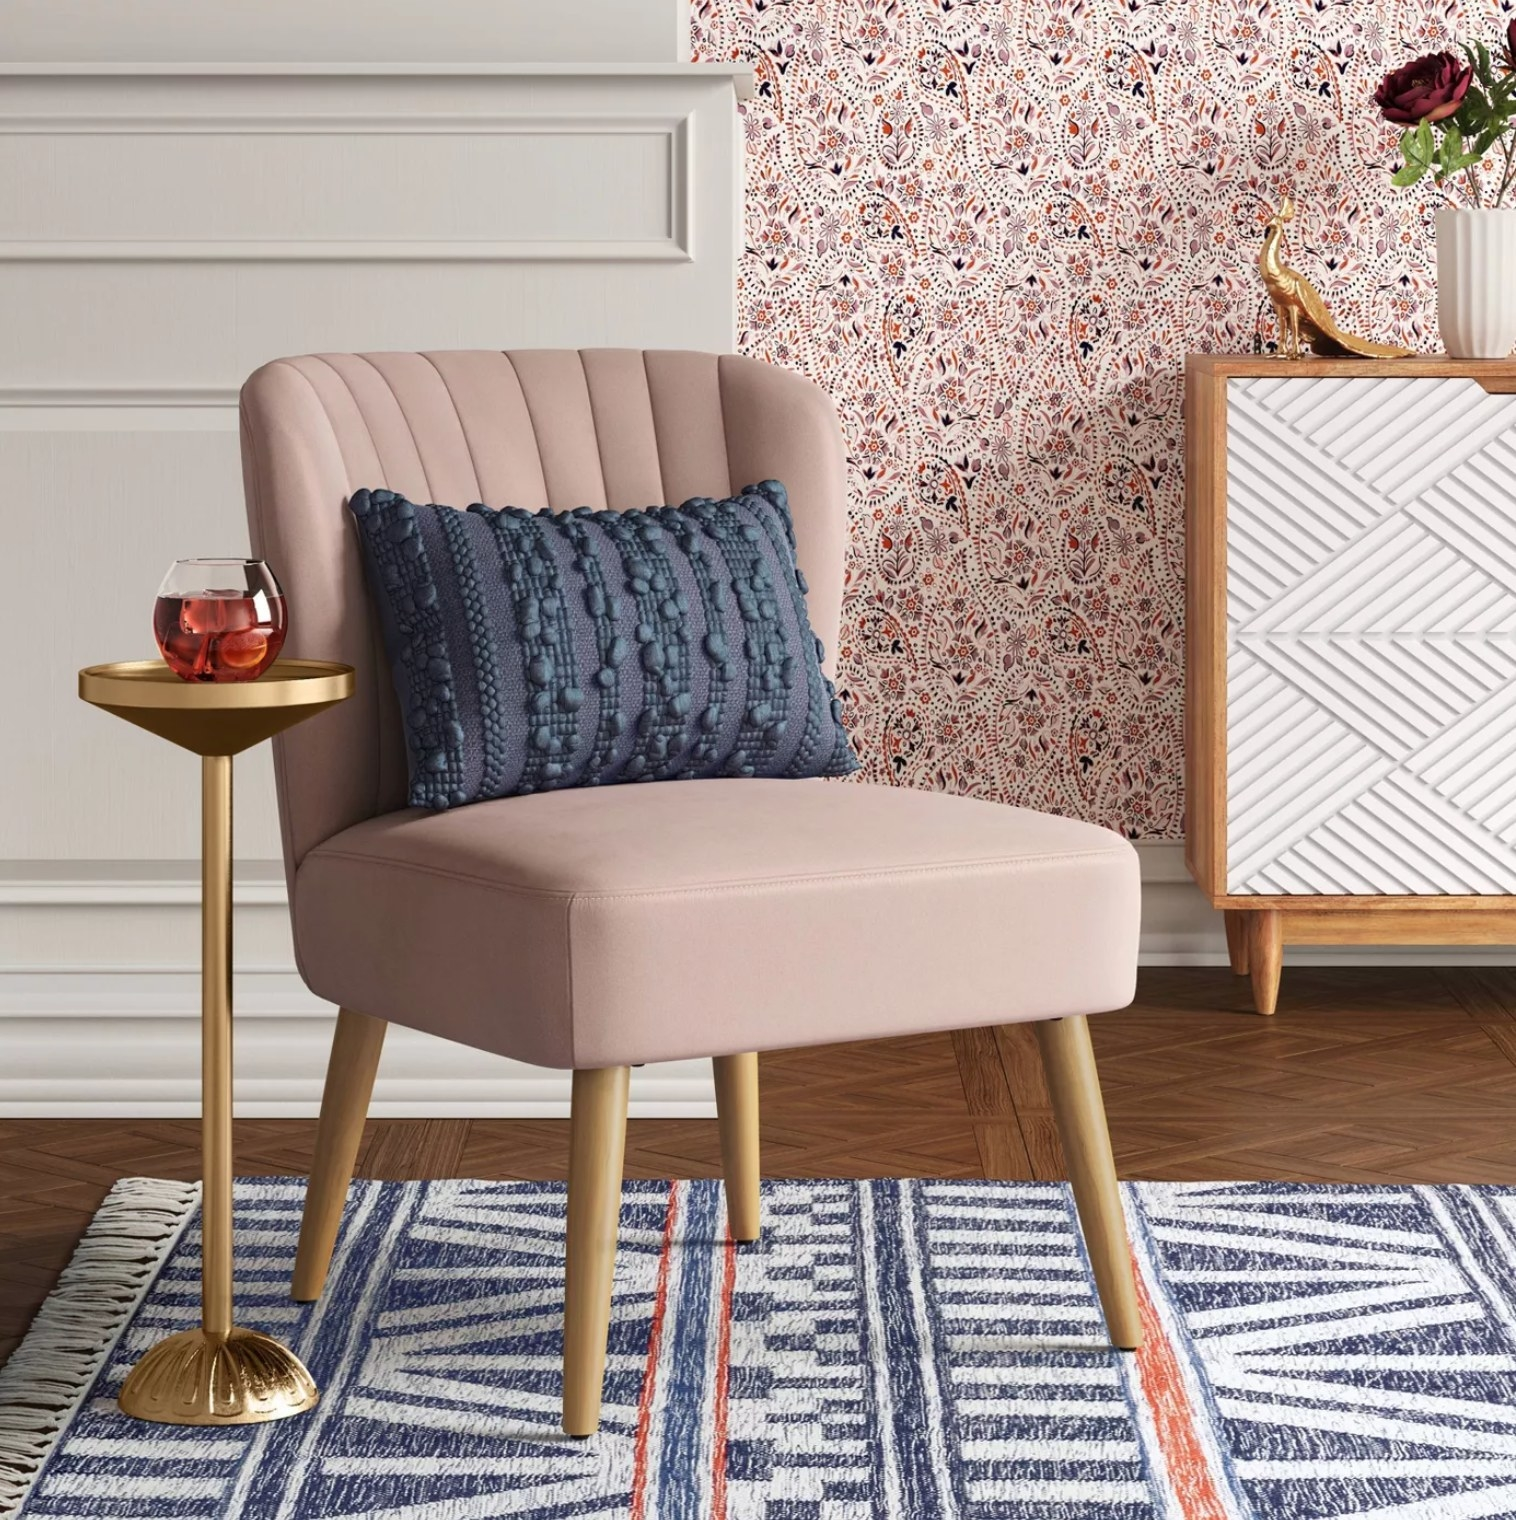 the pink chair with a blue pillow next to a gold side table with a drink on it